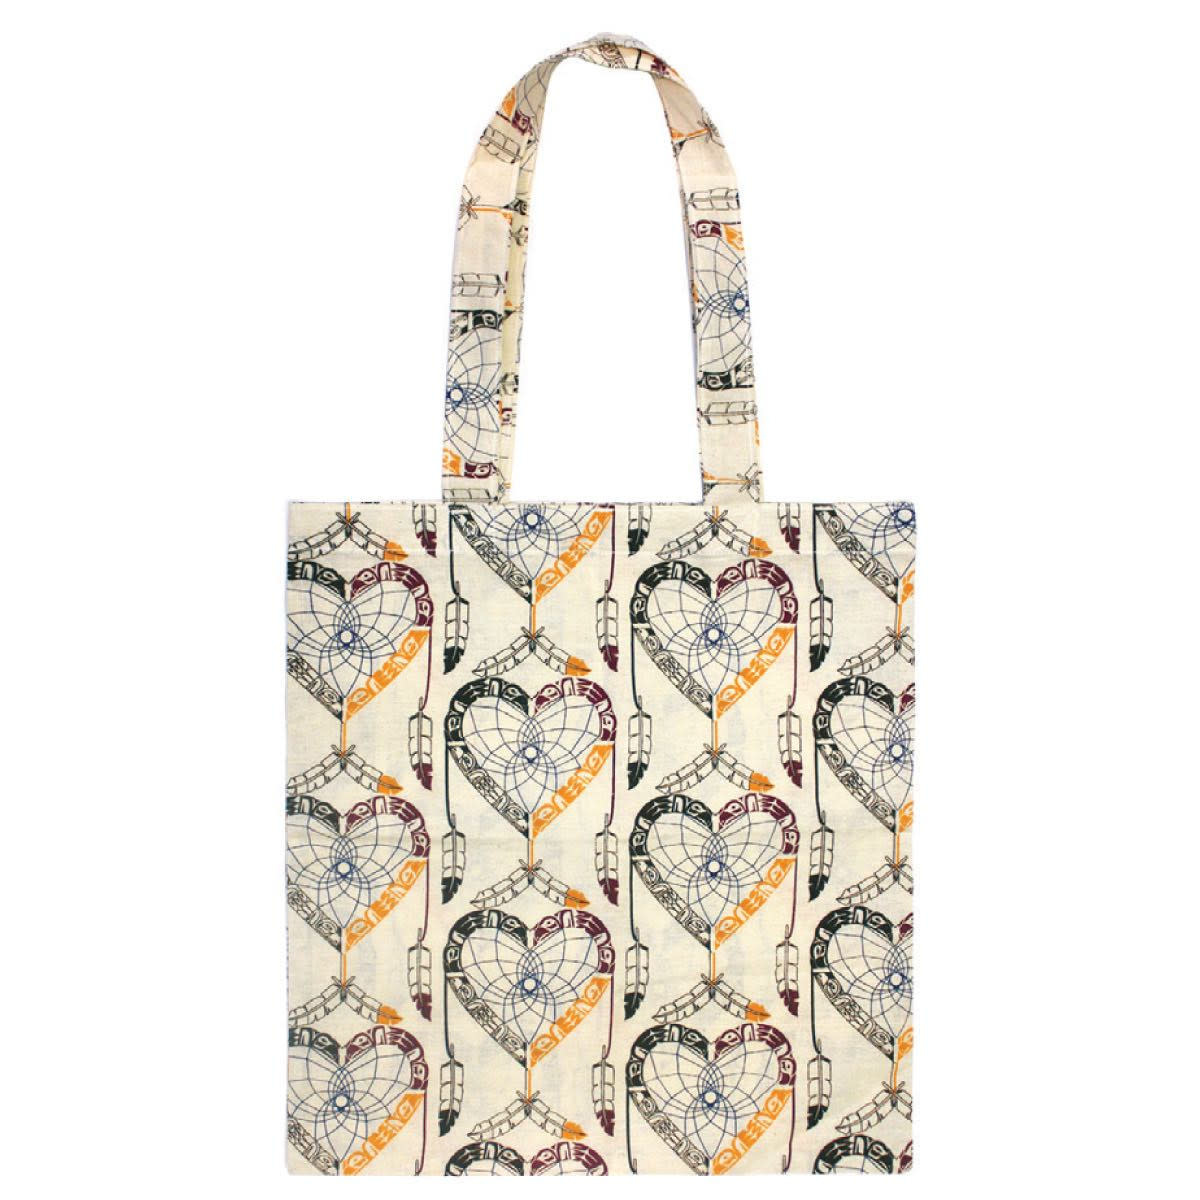 Cotton Eco Tote - Healing Eagle Heart by Mervin Windsor-1